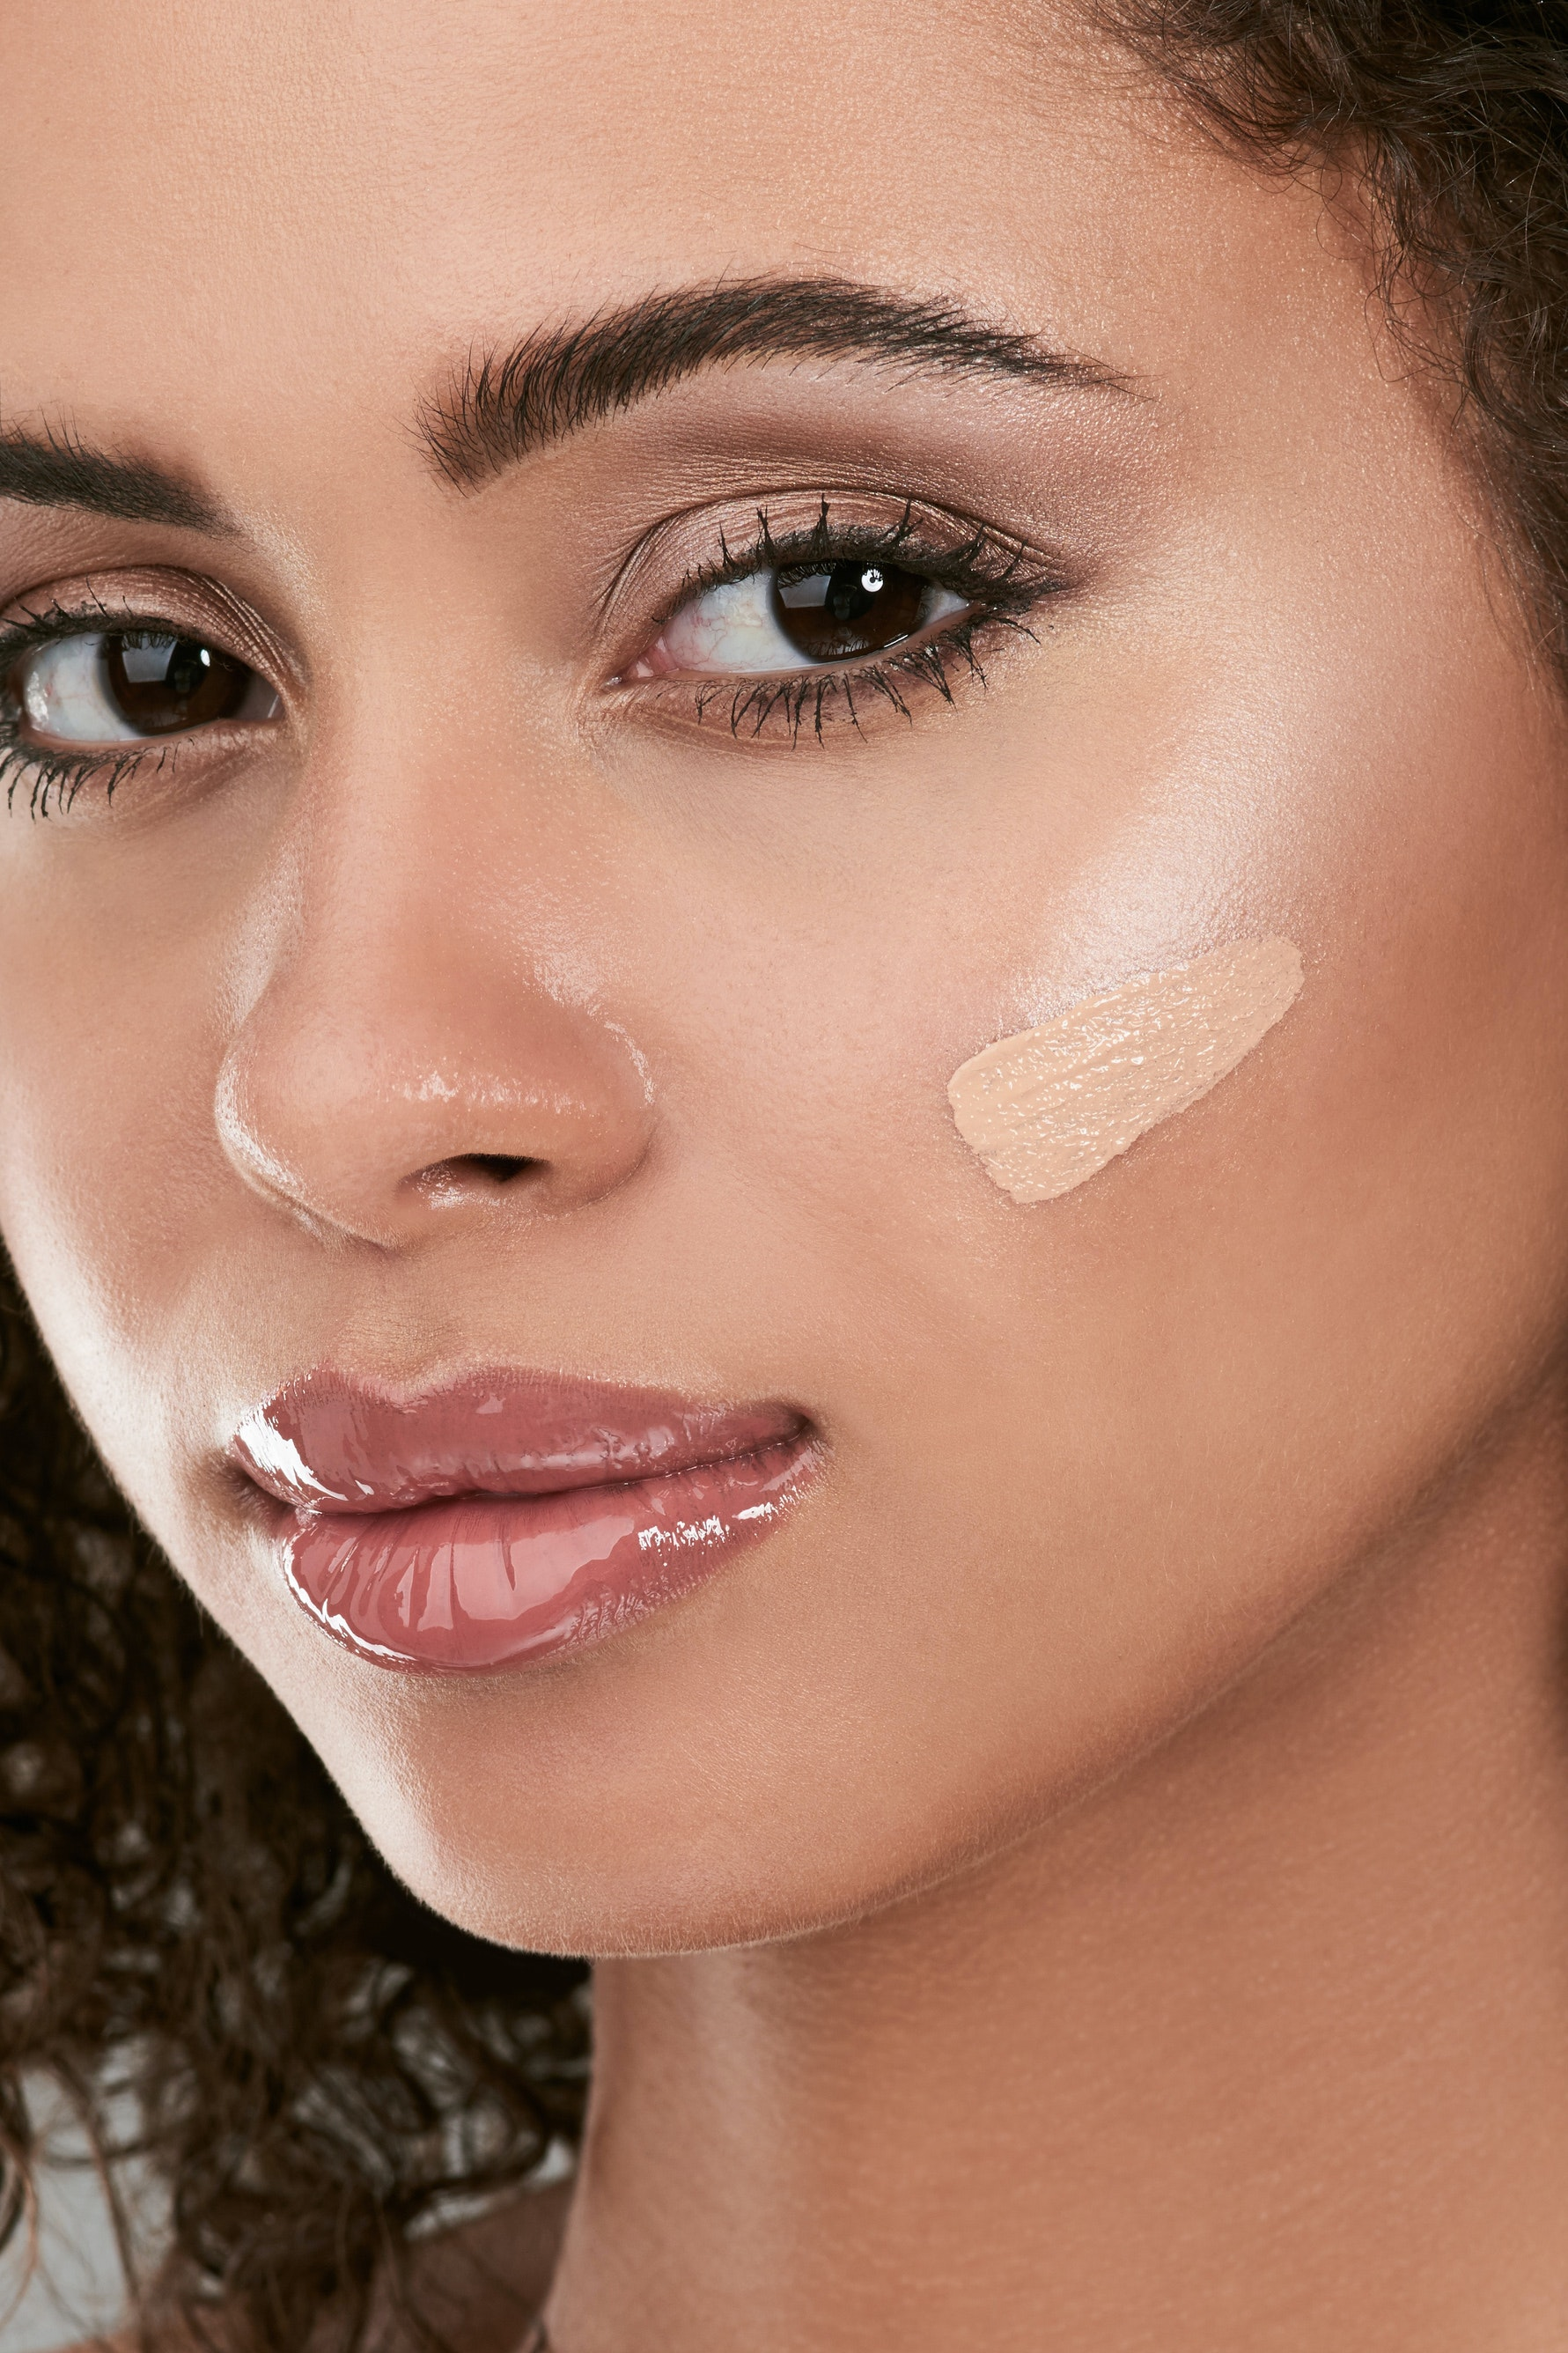 Celebrity Makeup Artists Share Their Tips For a Flawless Concealer Application